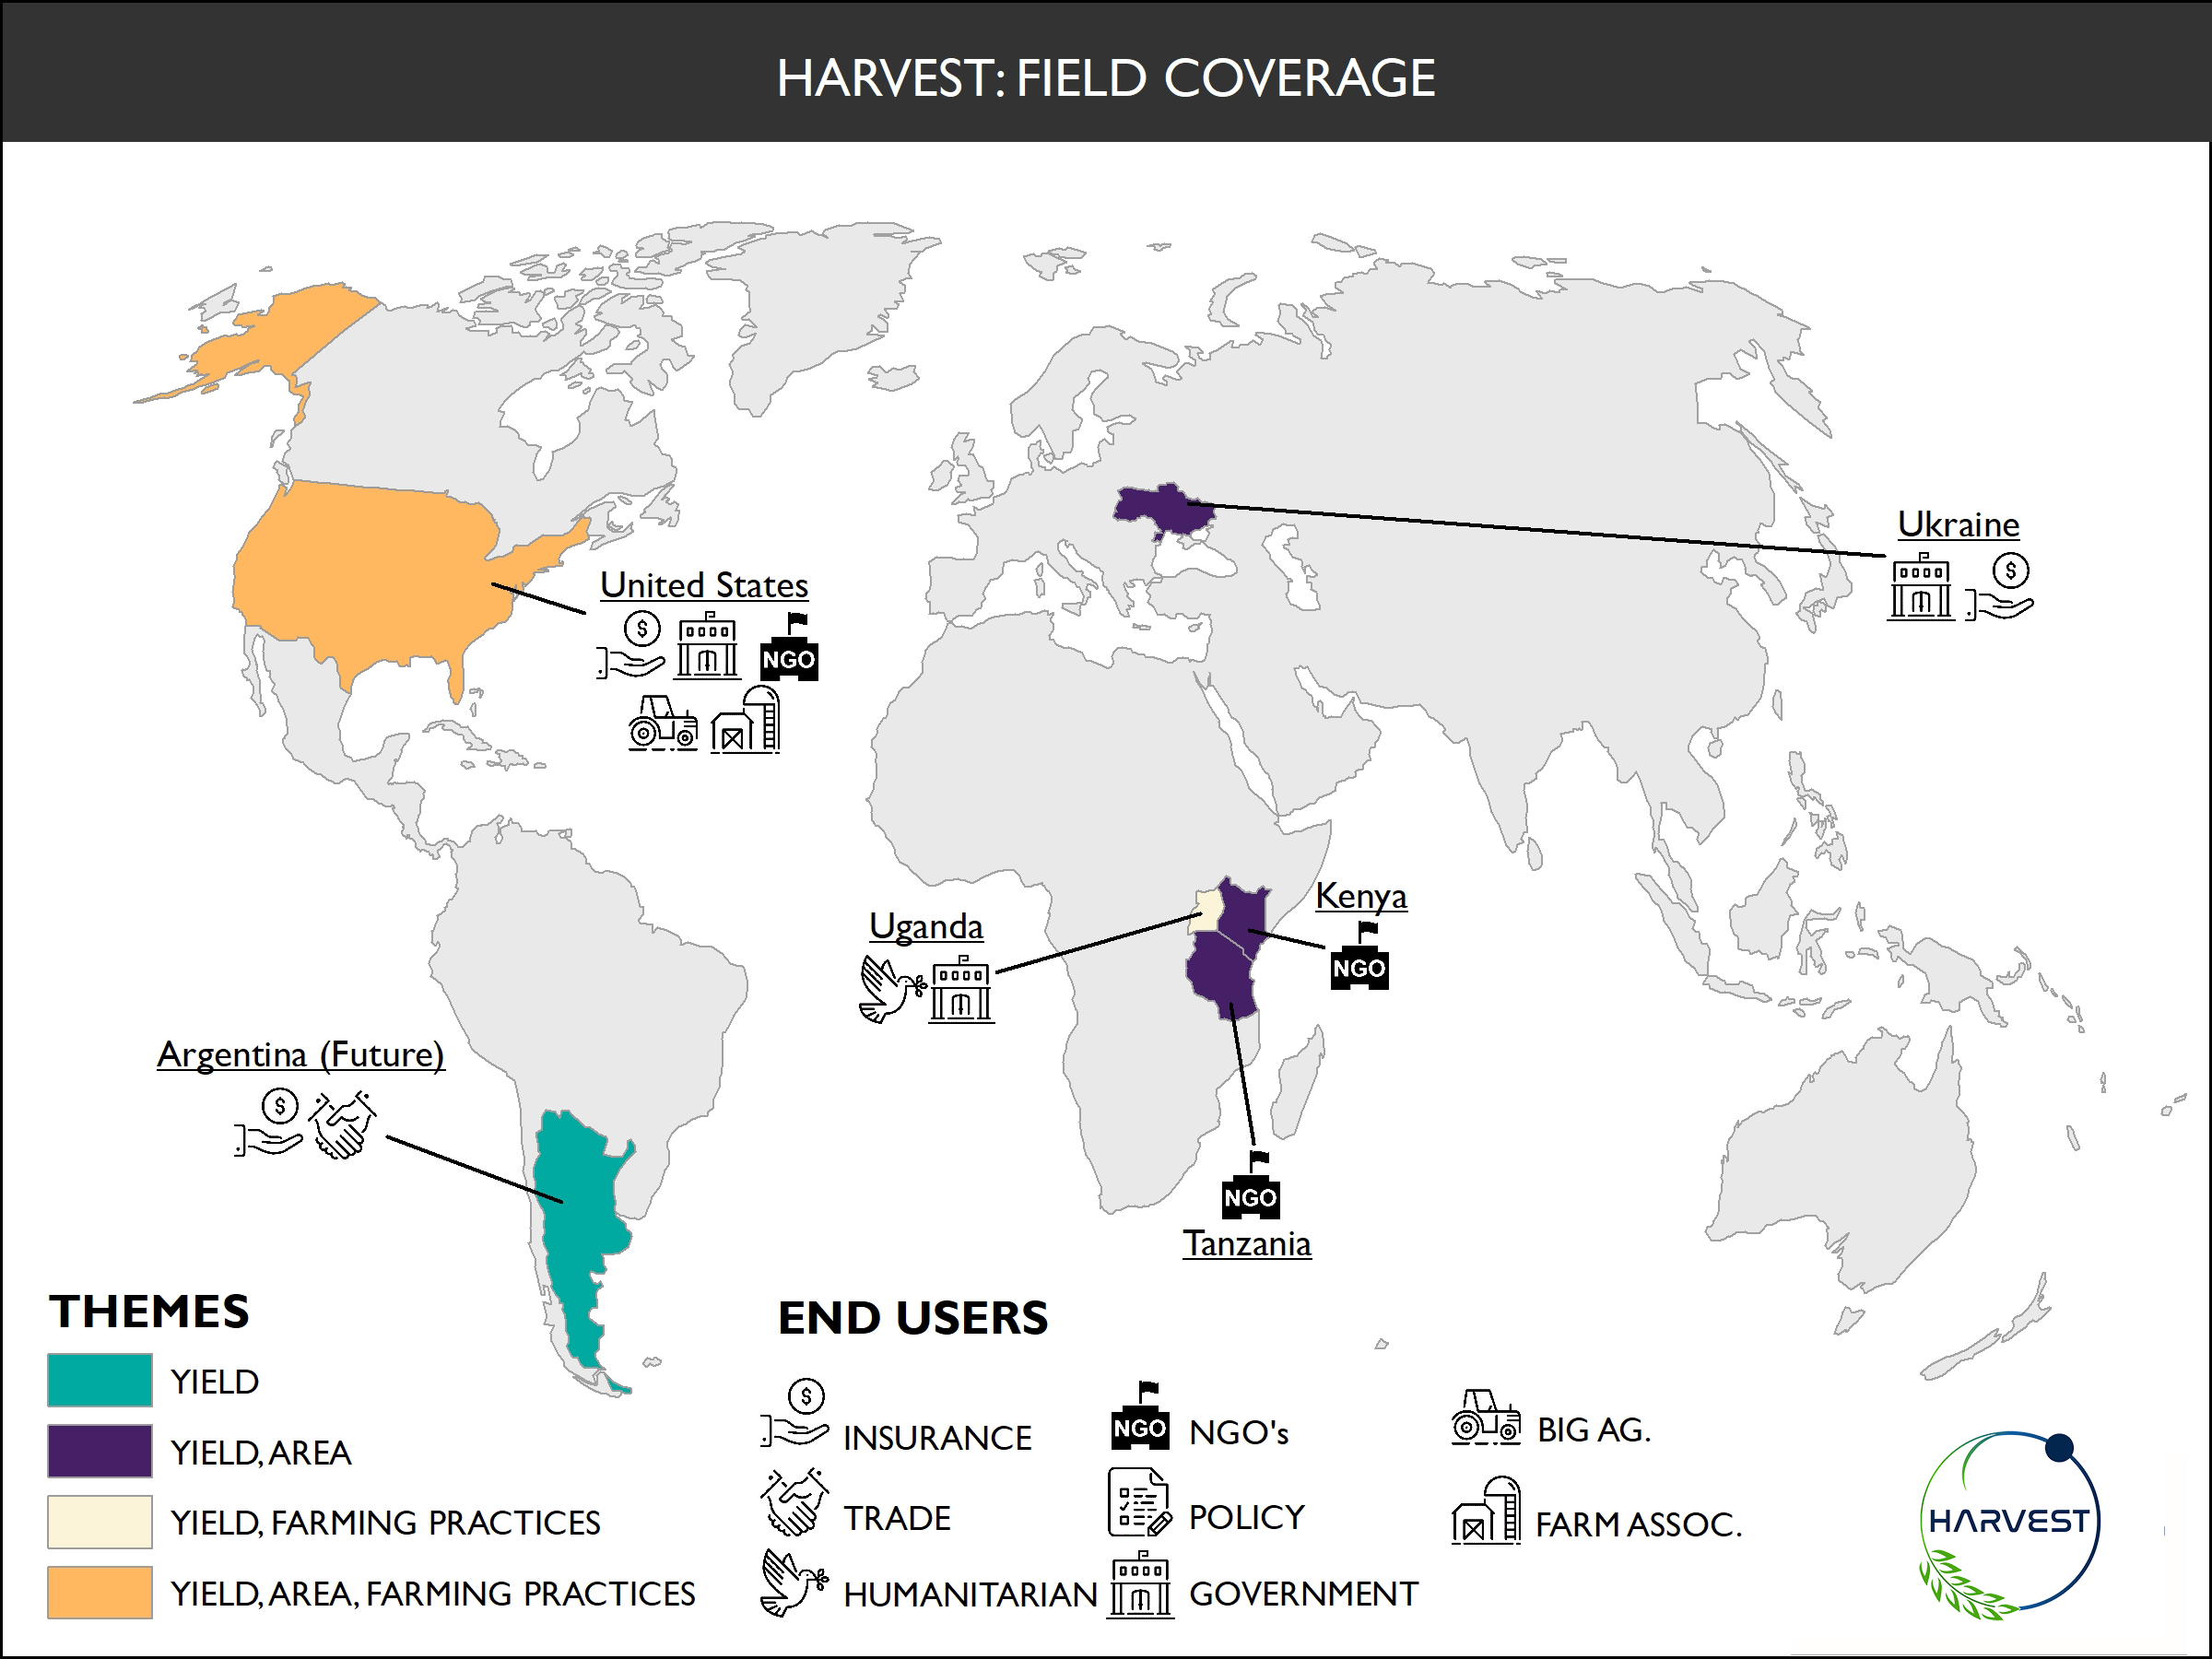 Harvest Field Coverage